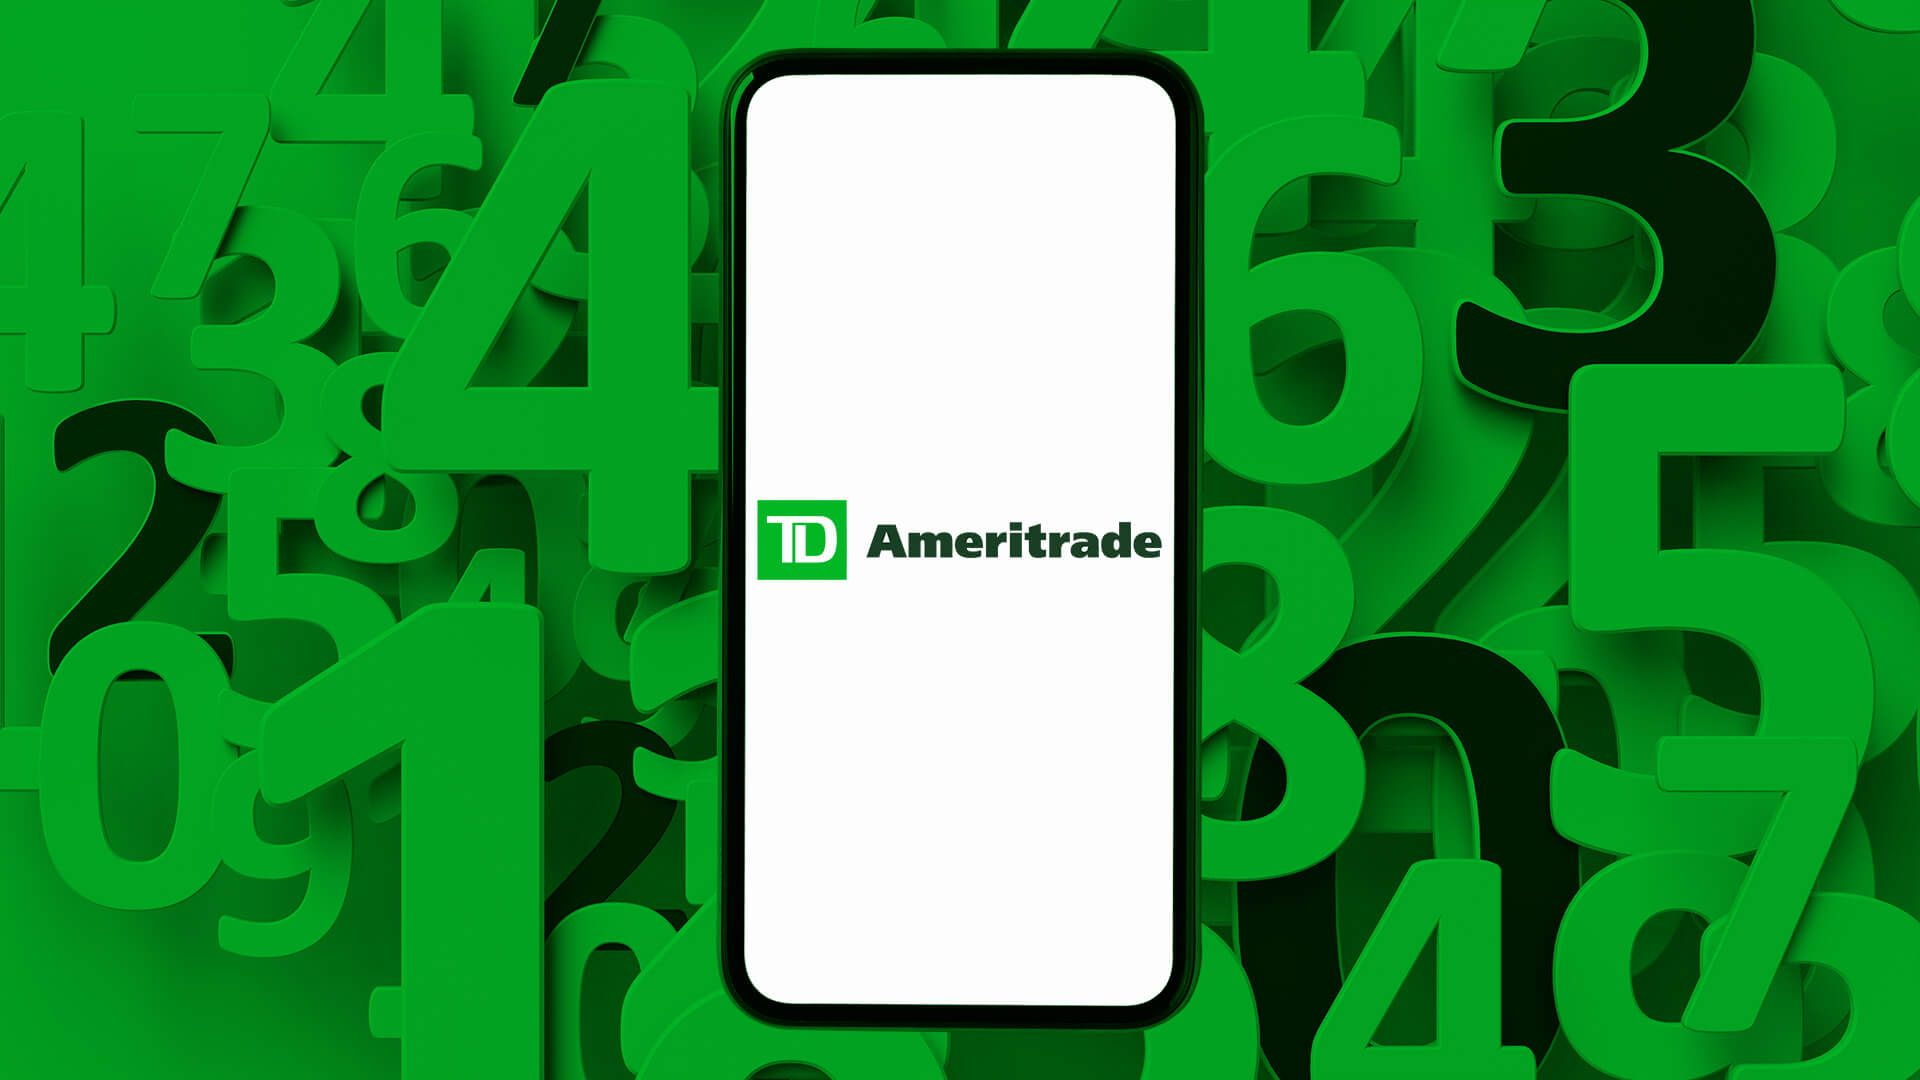 TD Ameritrade routing number